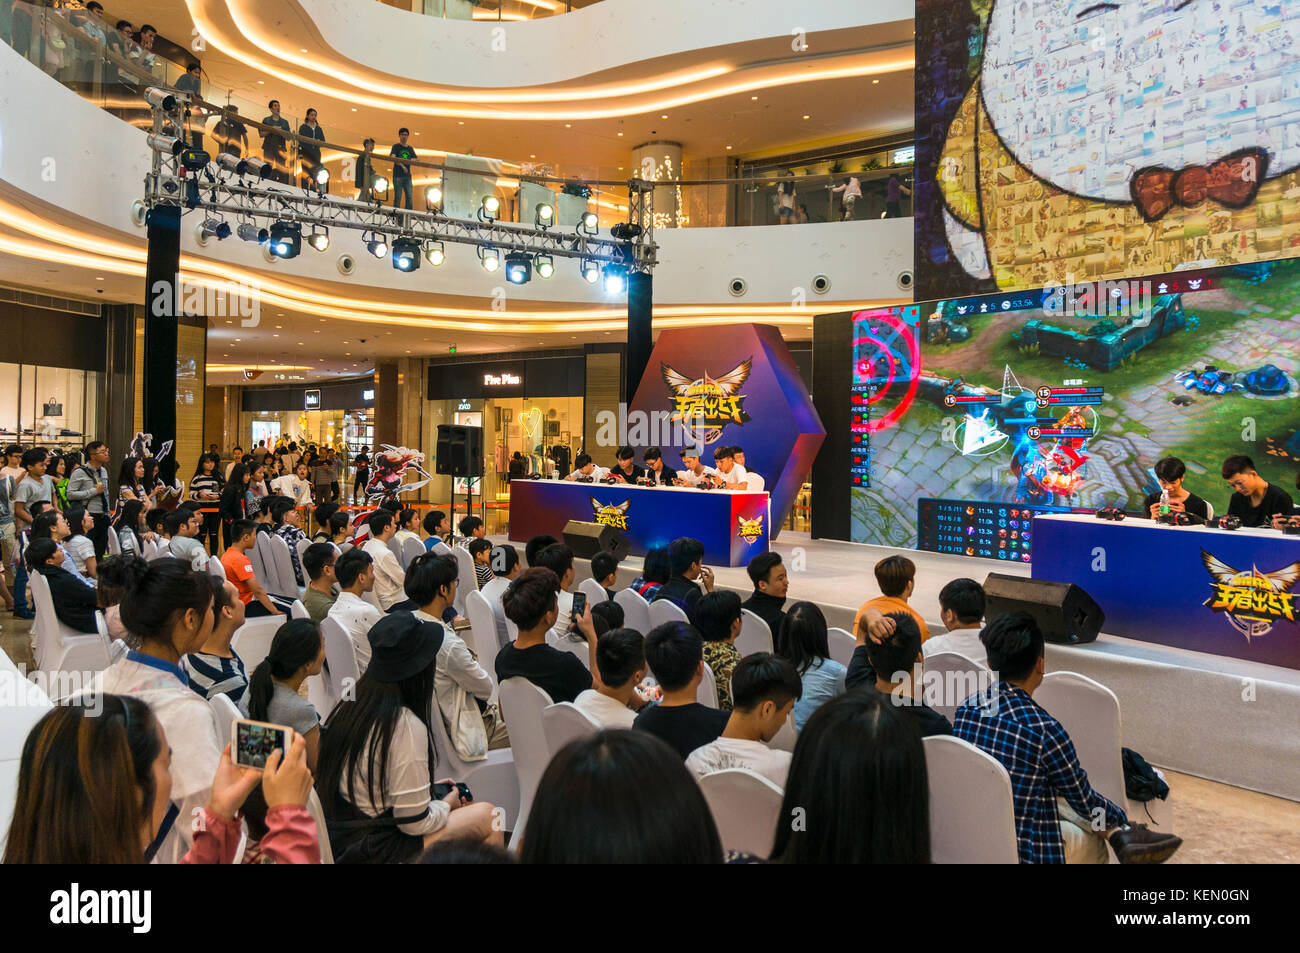 Team mobile video game competition, Kings Smackdown, a League of Legends style game, at a shopping mall in Shenzhen, - Stock Image